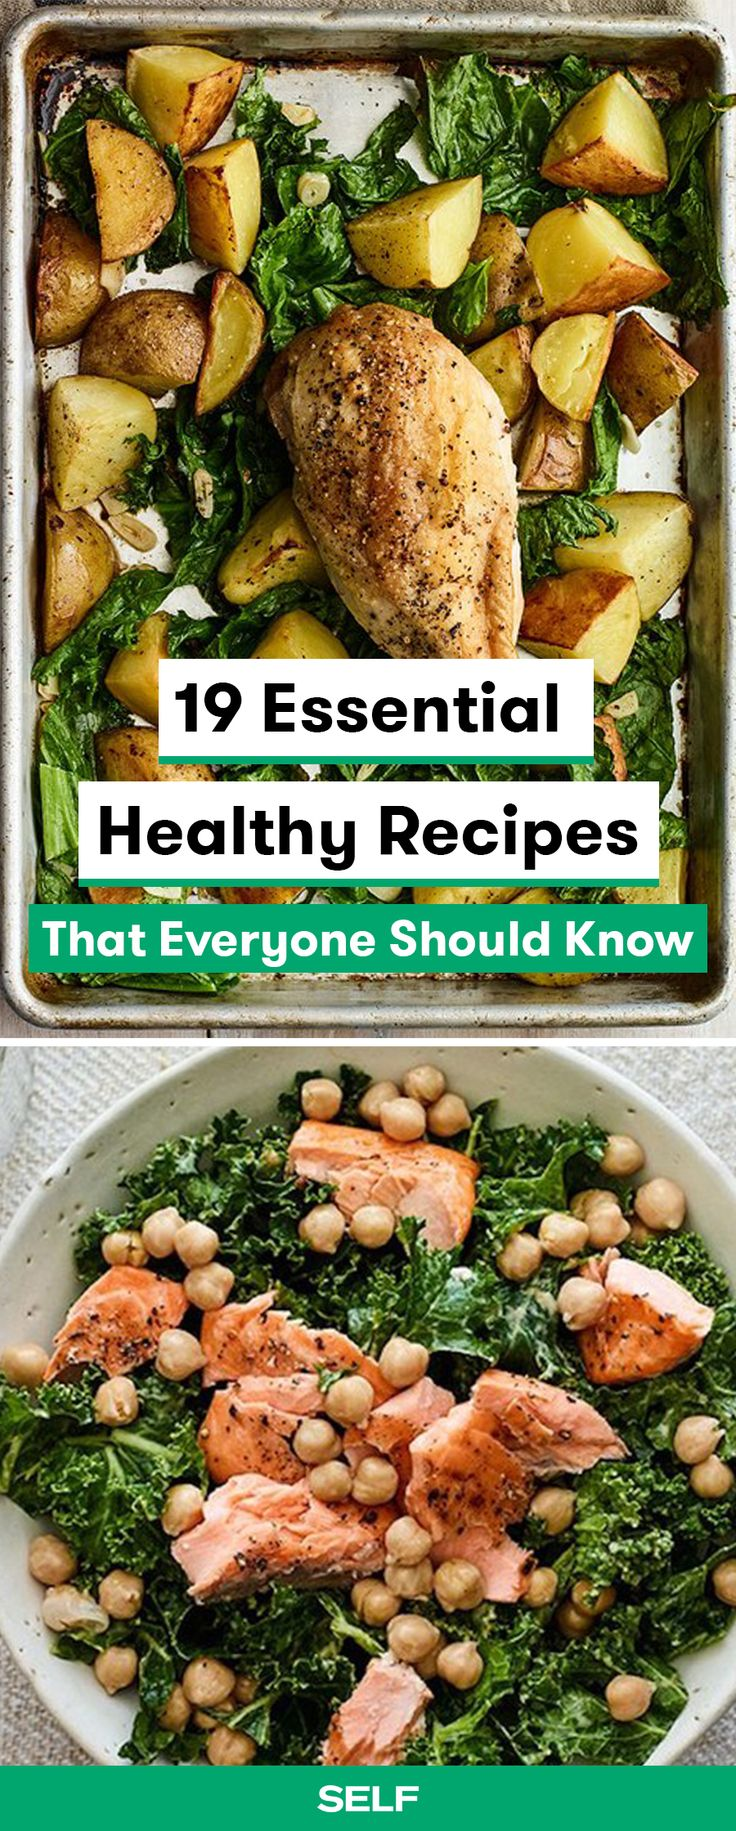 These essential healthy recipes are easy and simple to make. Fill up with delicious kale, salmon, and whole-grain pastas for a meal that keeps on giving in an hour or less.